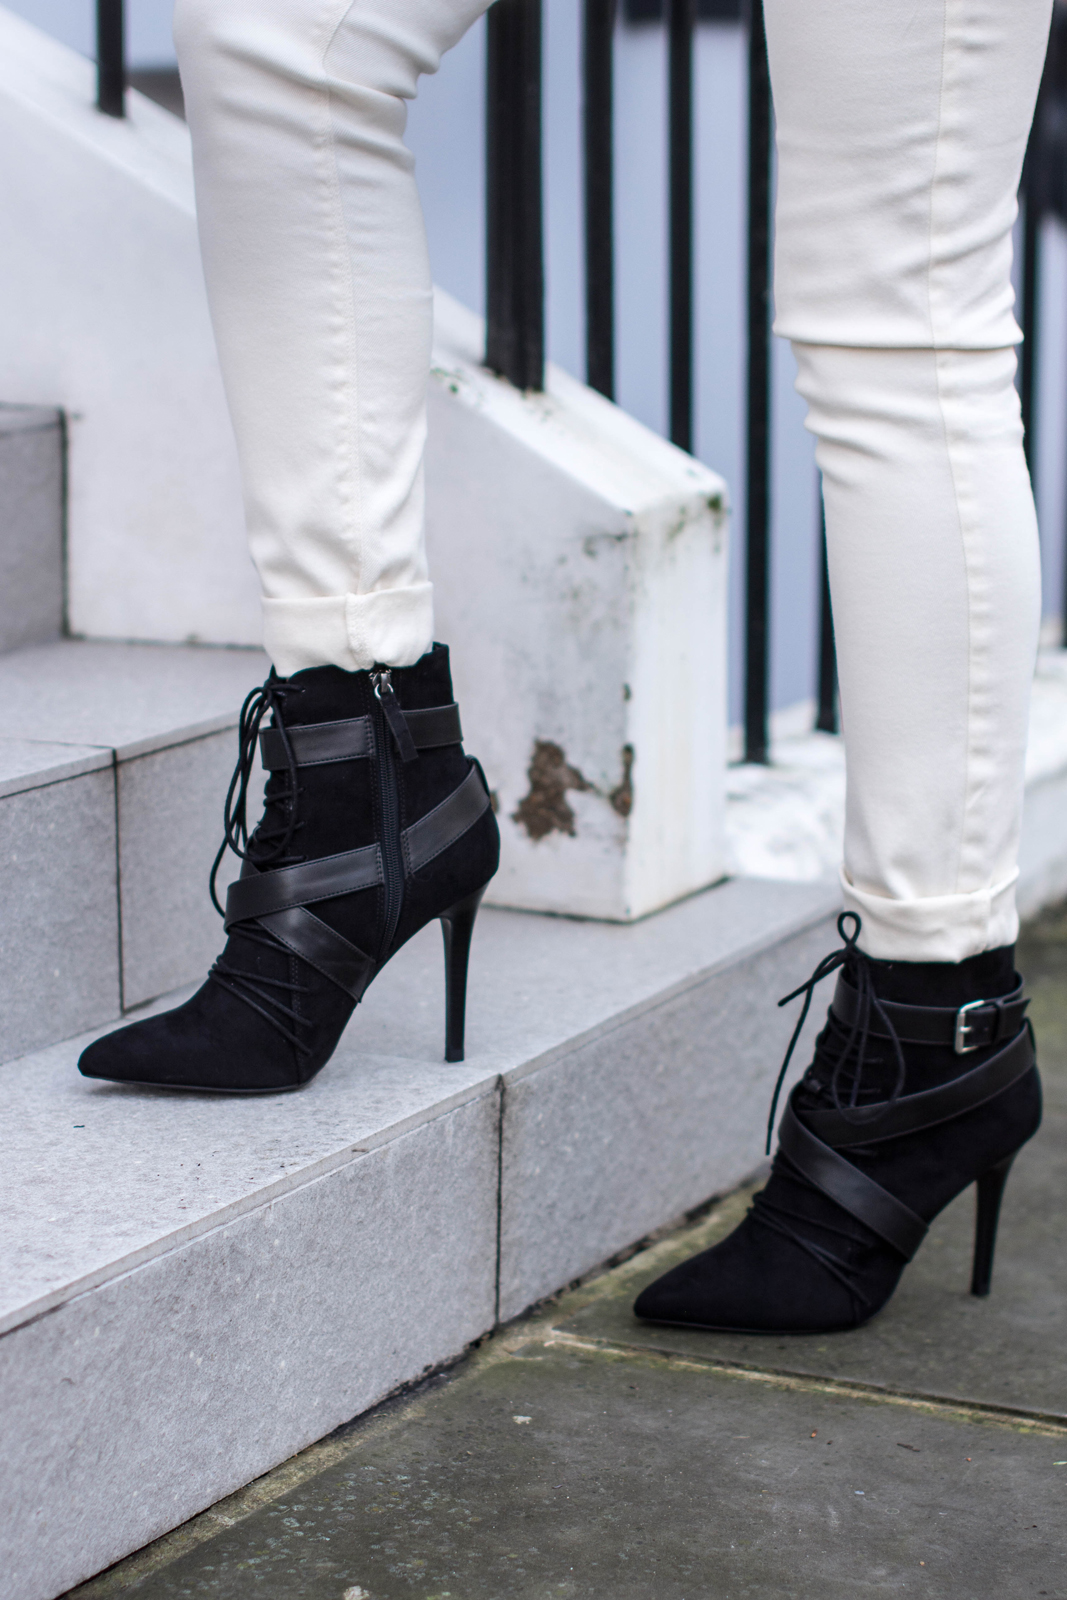 EJSTYLE - Zara TRF white jeans, Zara lace up ankle boots, Isabel Marant Inspired look